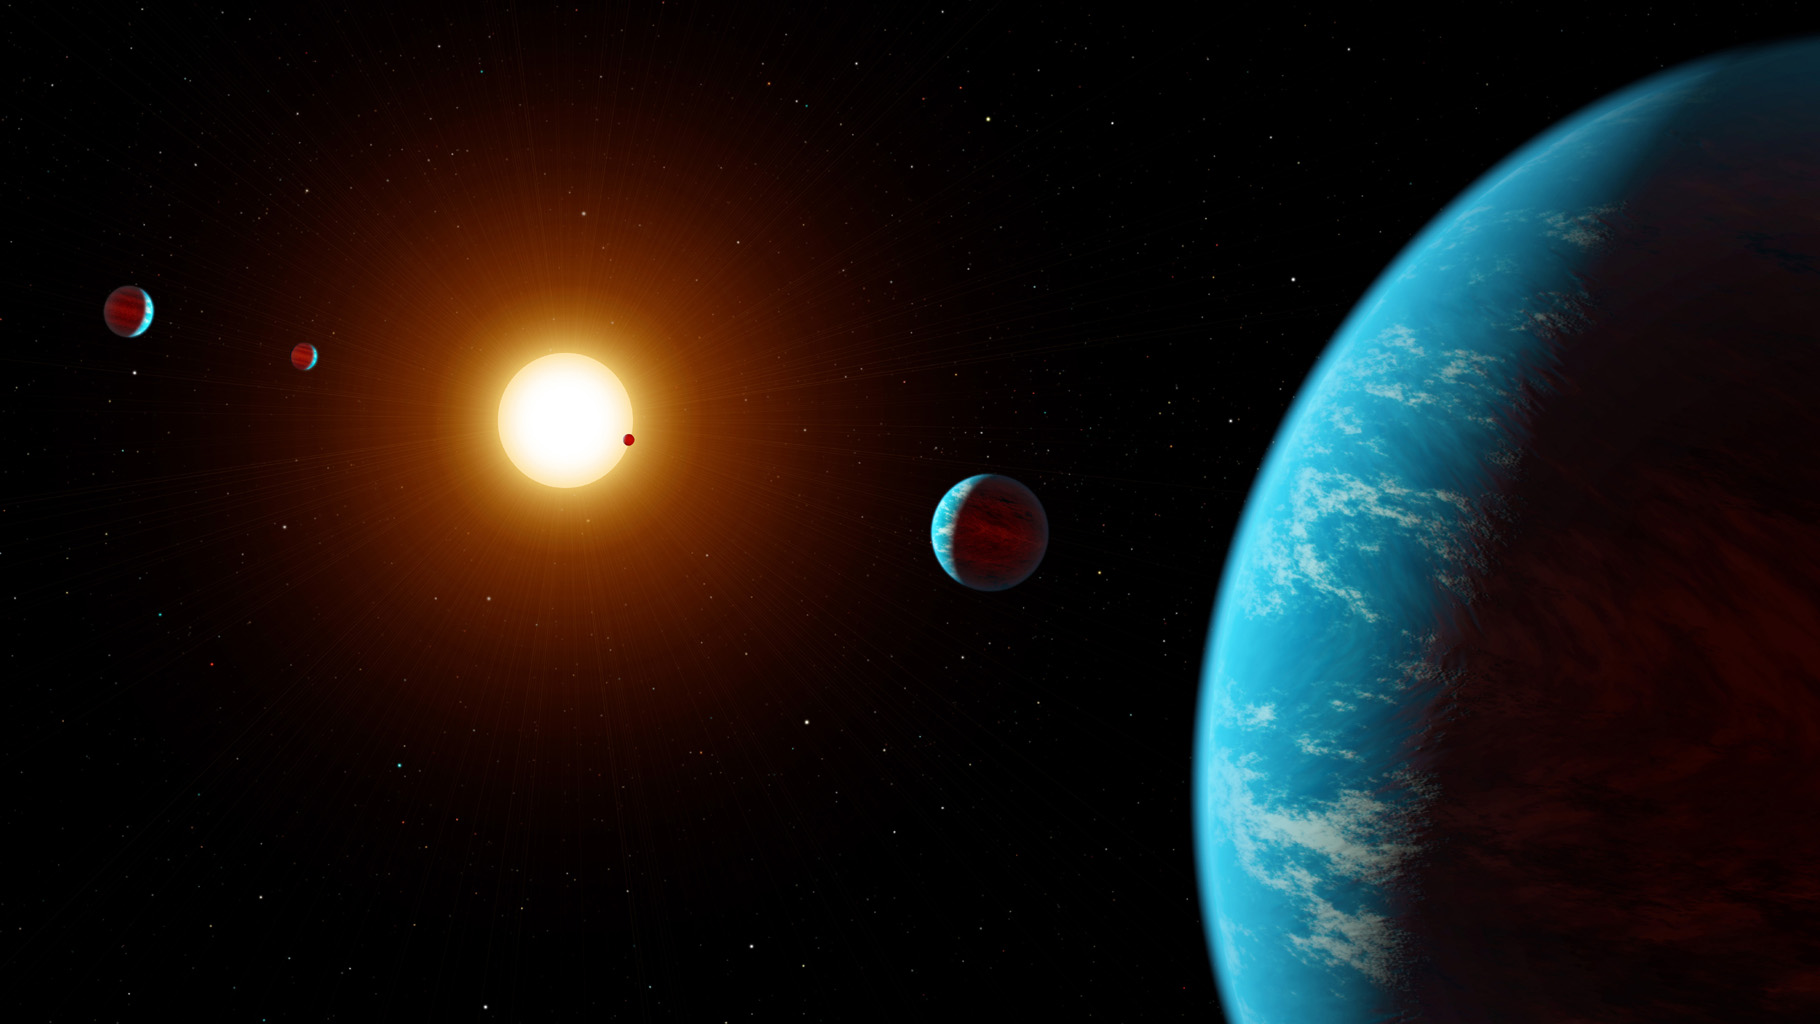 This artist concept shows the K2-138 system, the first multi-planet system